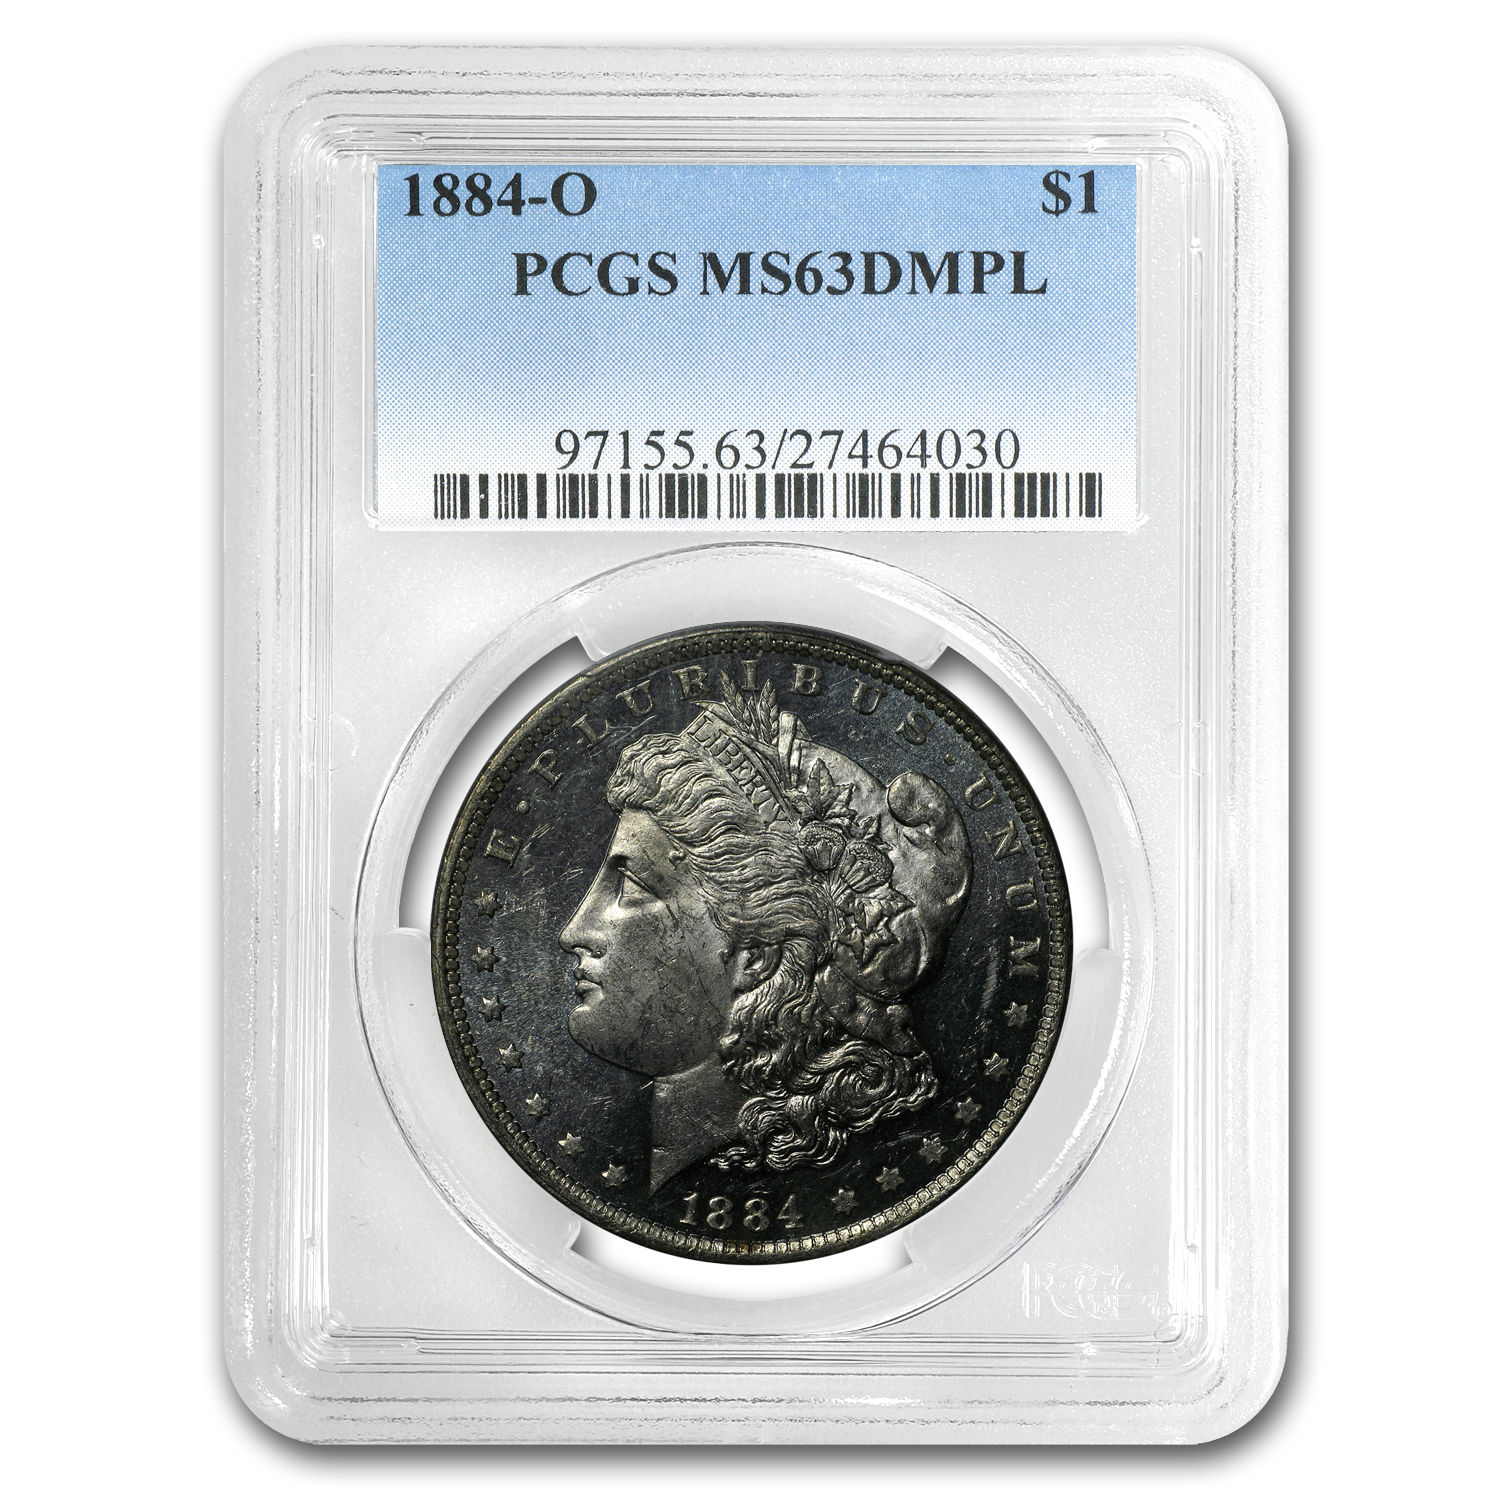 1884-O Morgan Dollar MS-63 DMPL PCGS